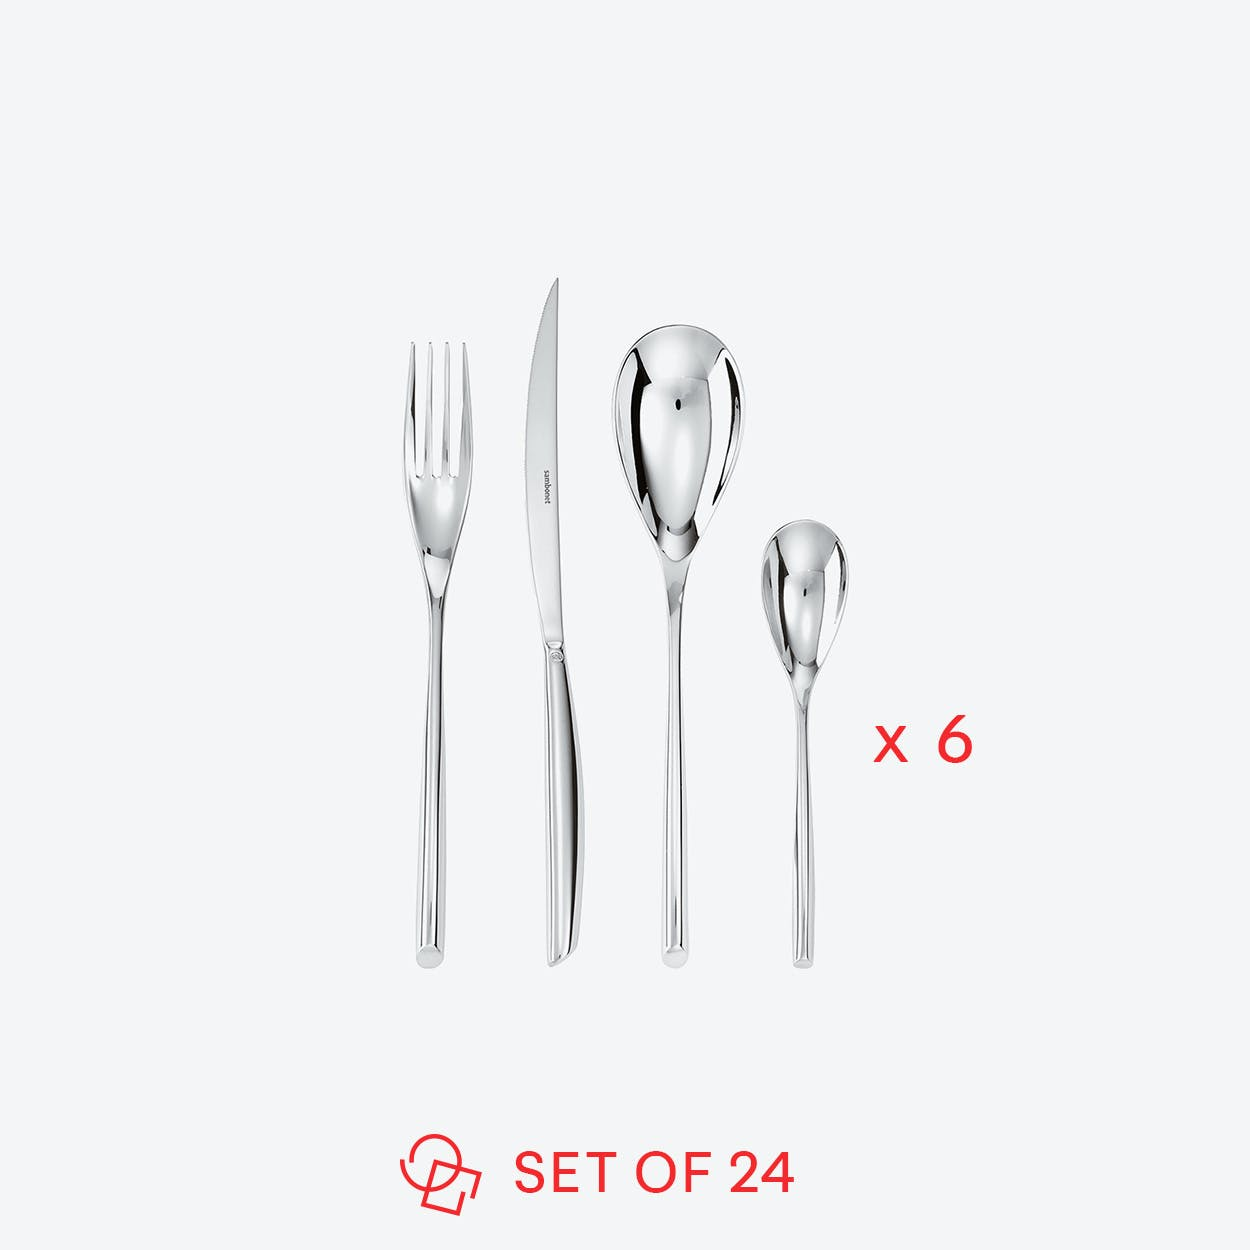 Bamboo Stainless Steel Flatware Set (24 pcs S.H.)